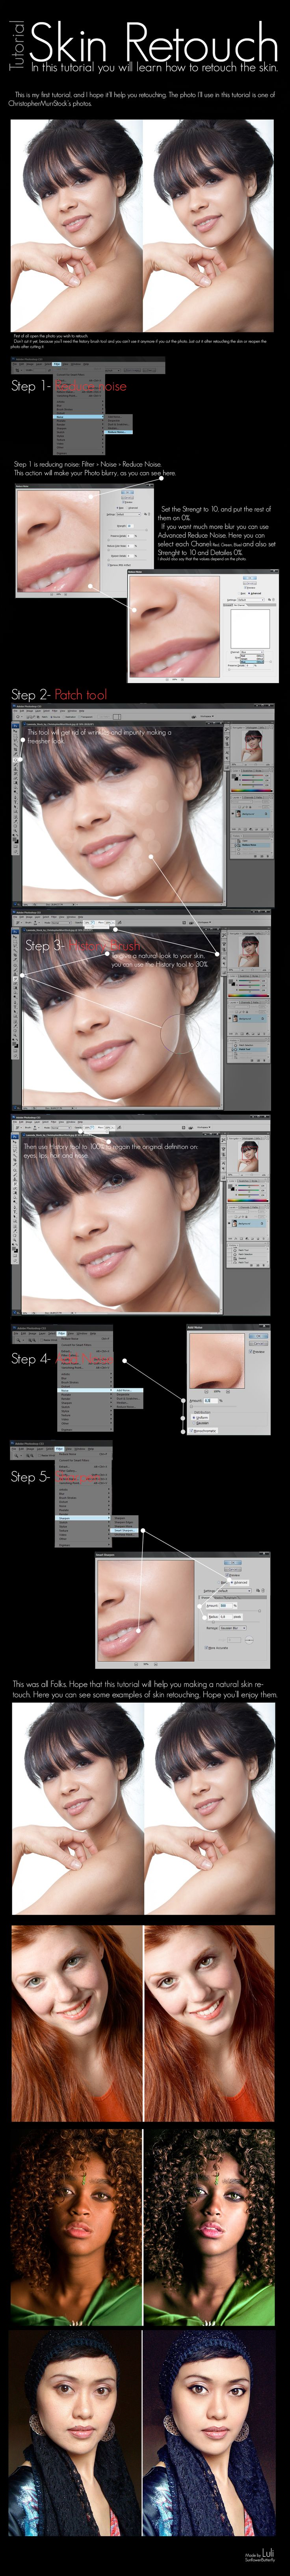 Skin Retouch Tutorial by ~Lore03 on deviantART